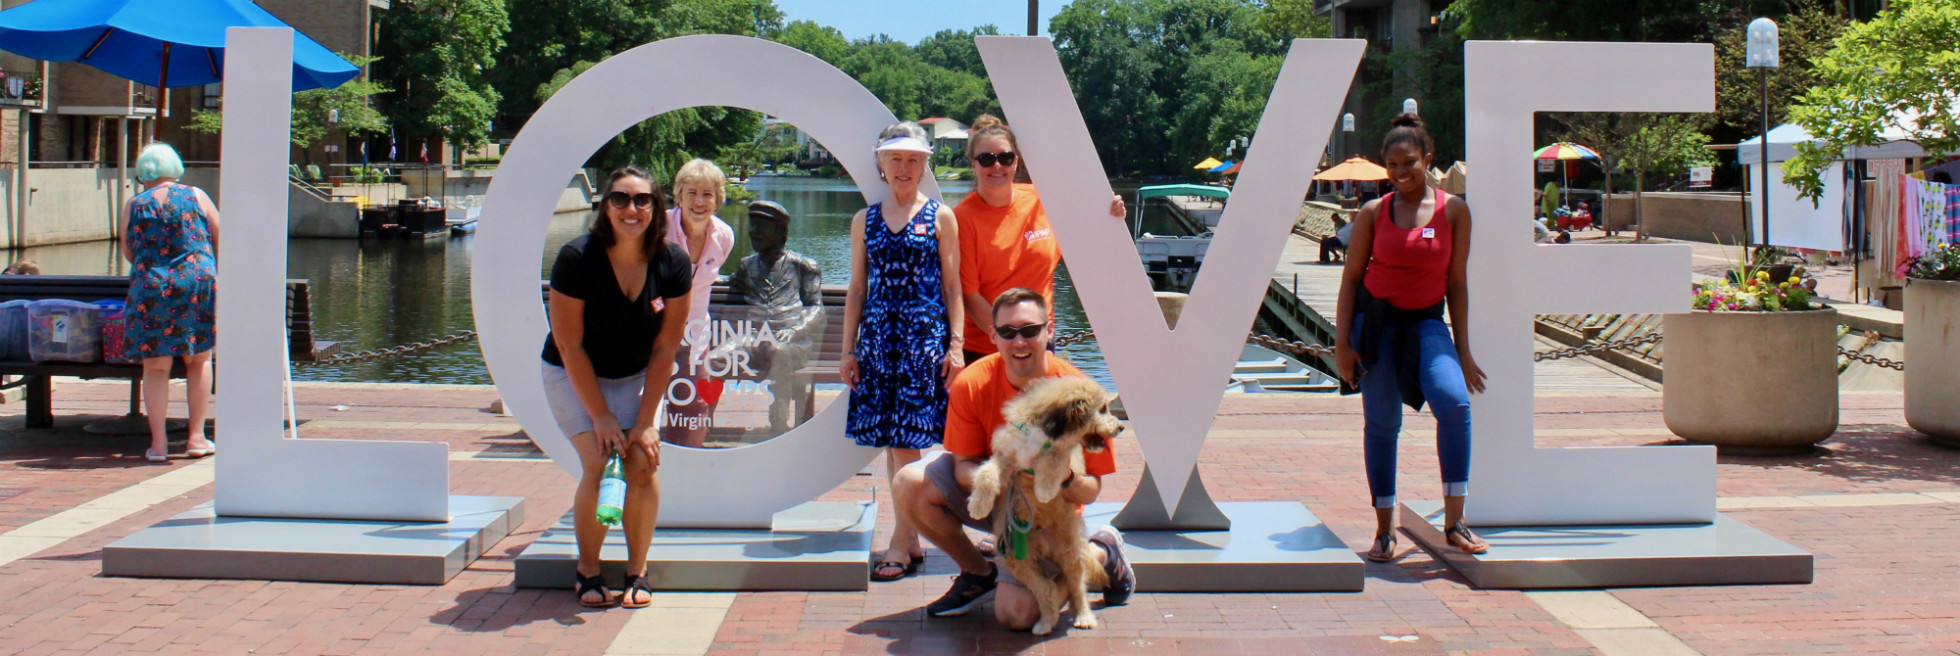 Volunteers | Public Art Reston